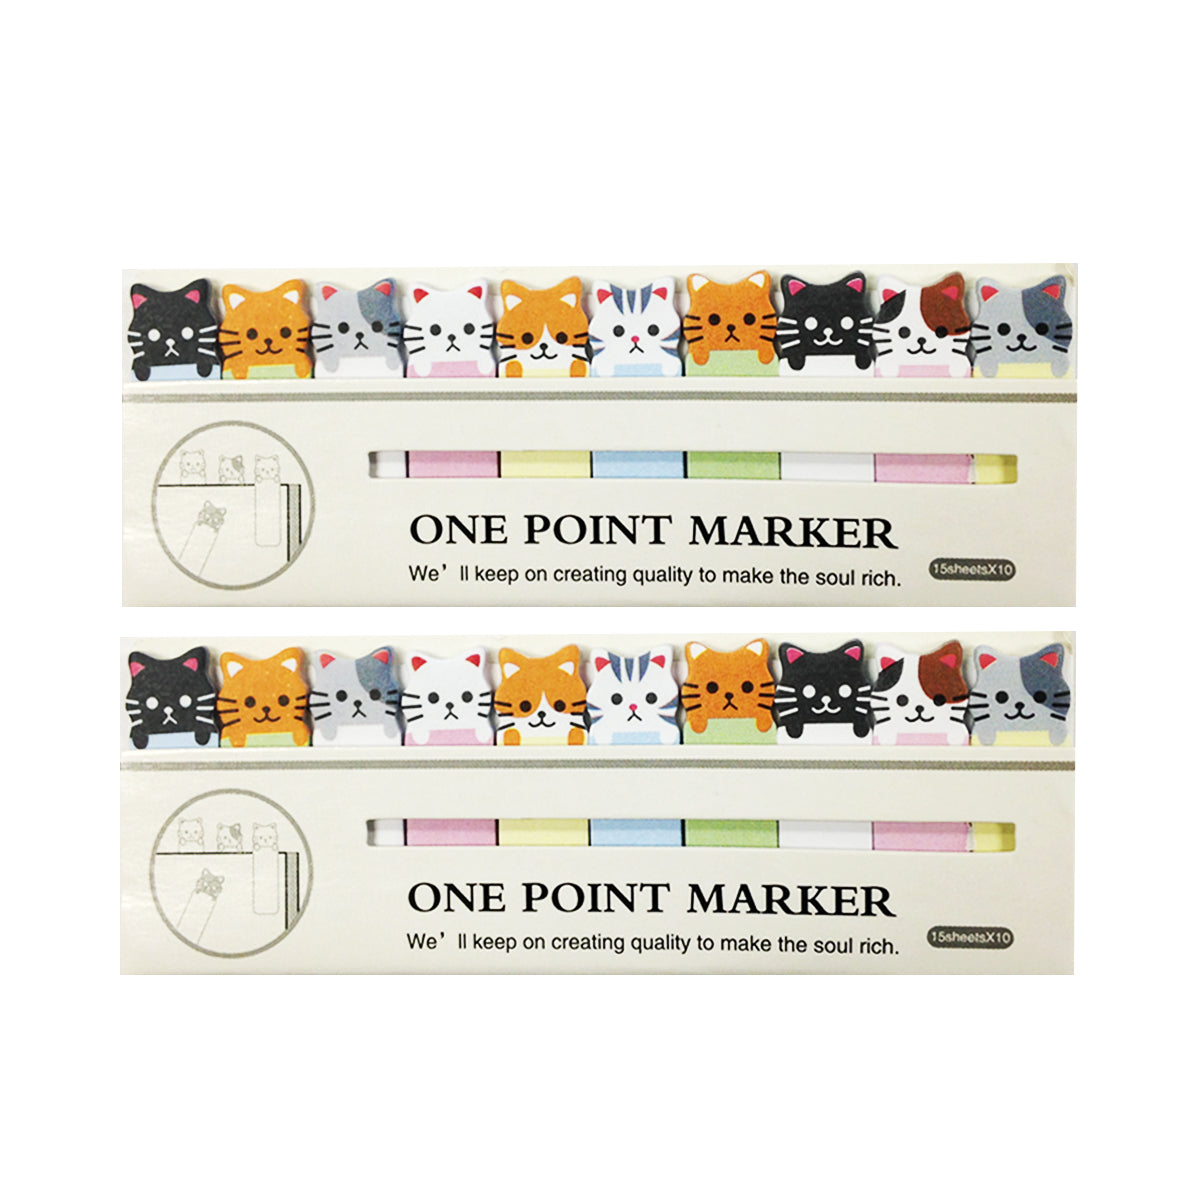 Wrapables Bookmark Flag Tab Sticky Notes (Set of 2)